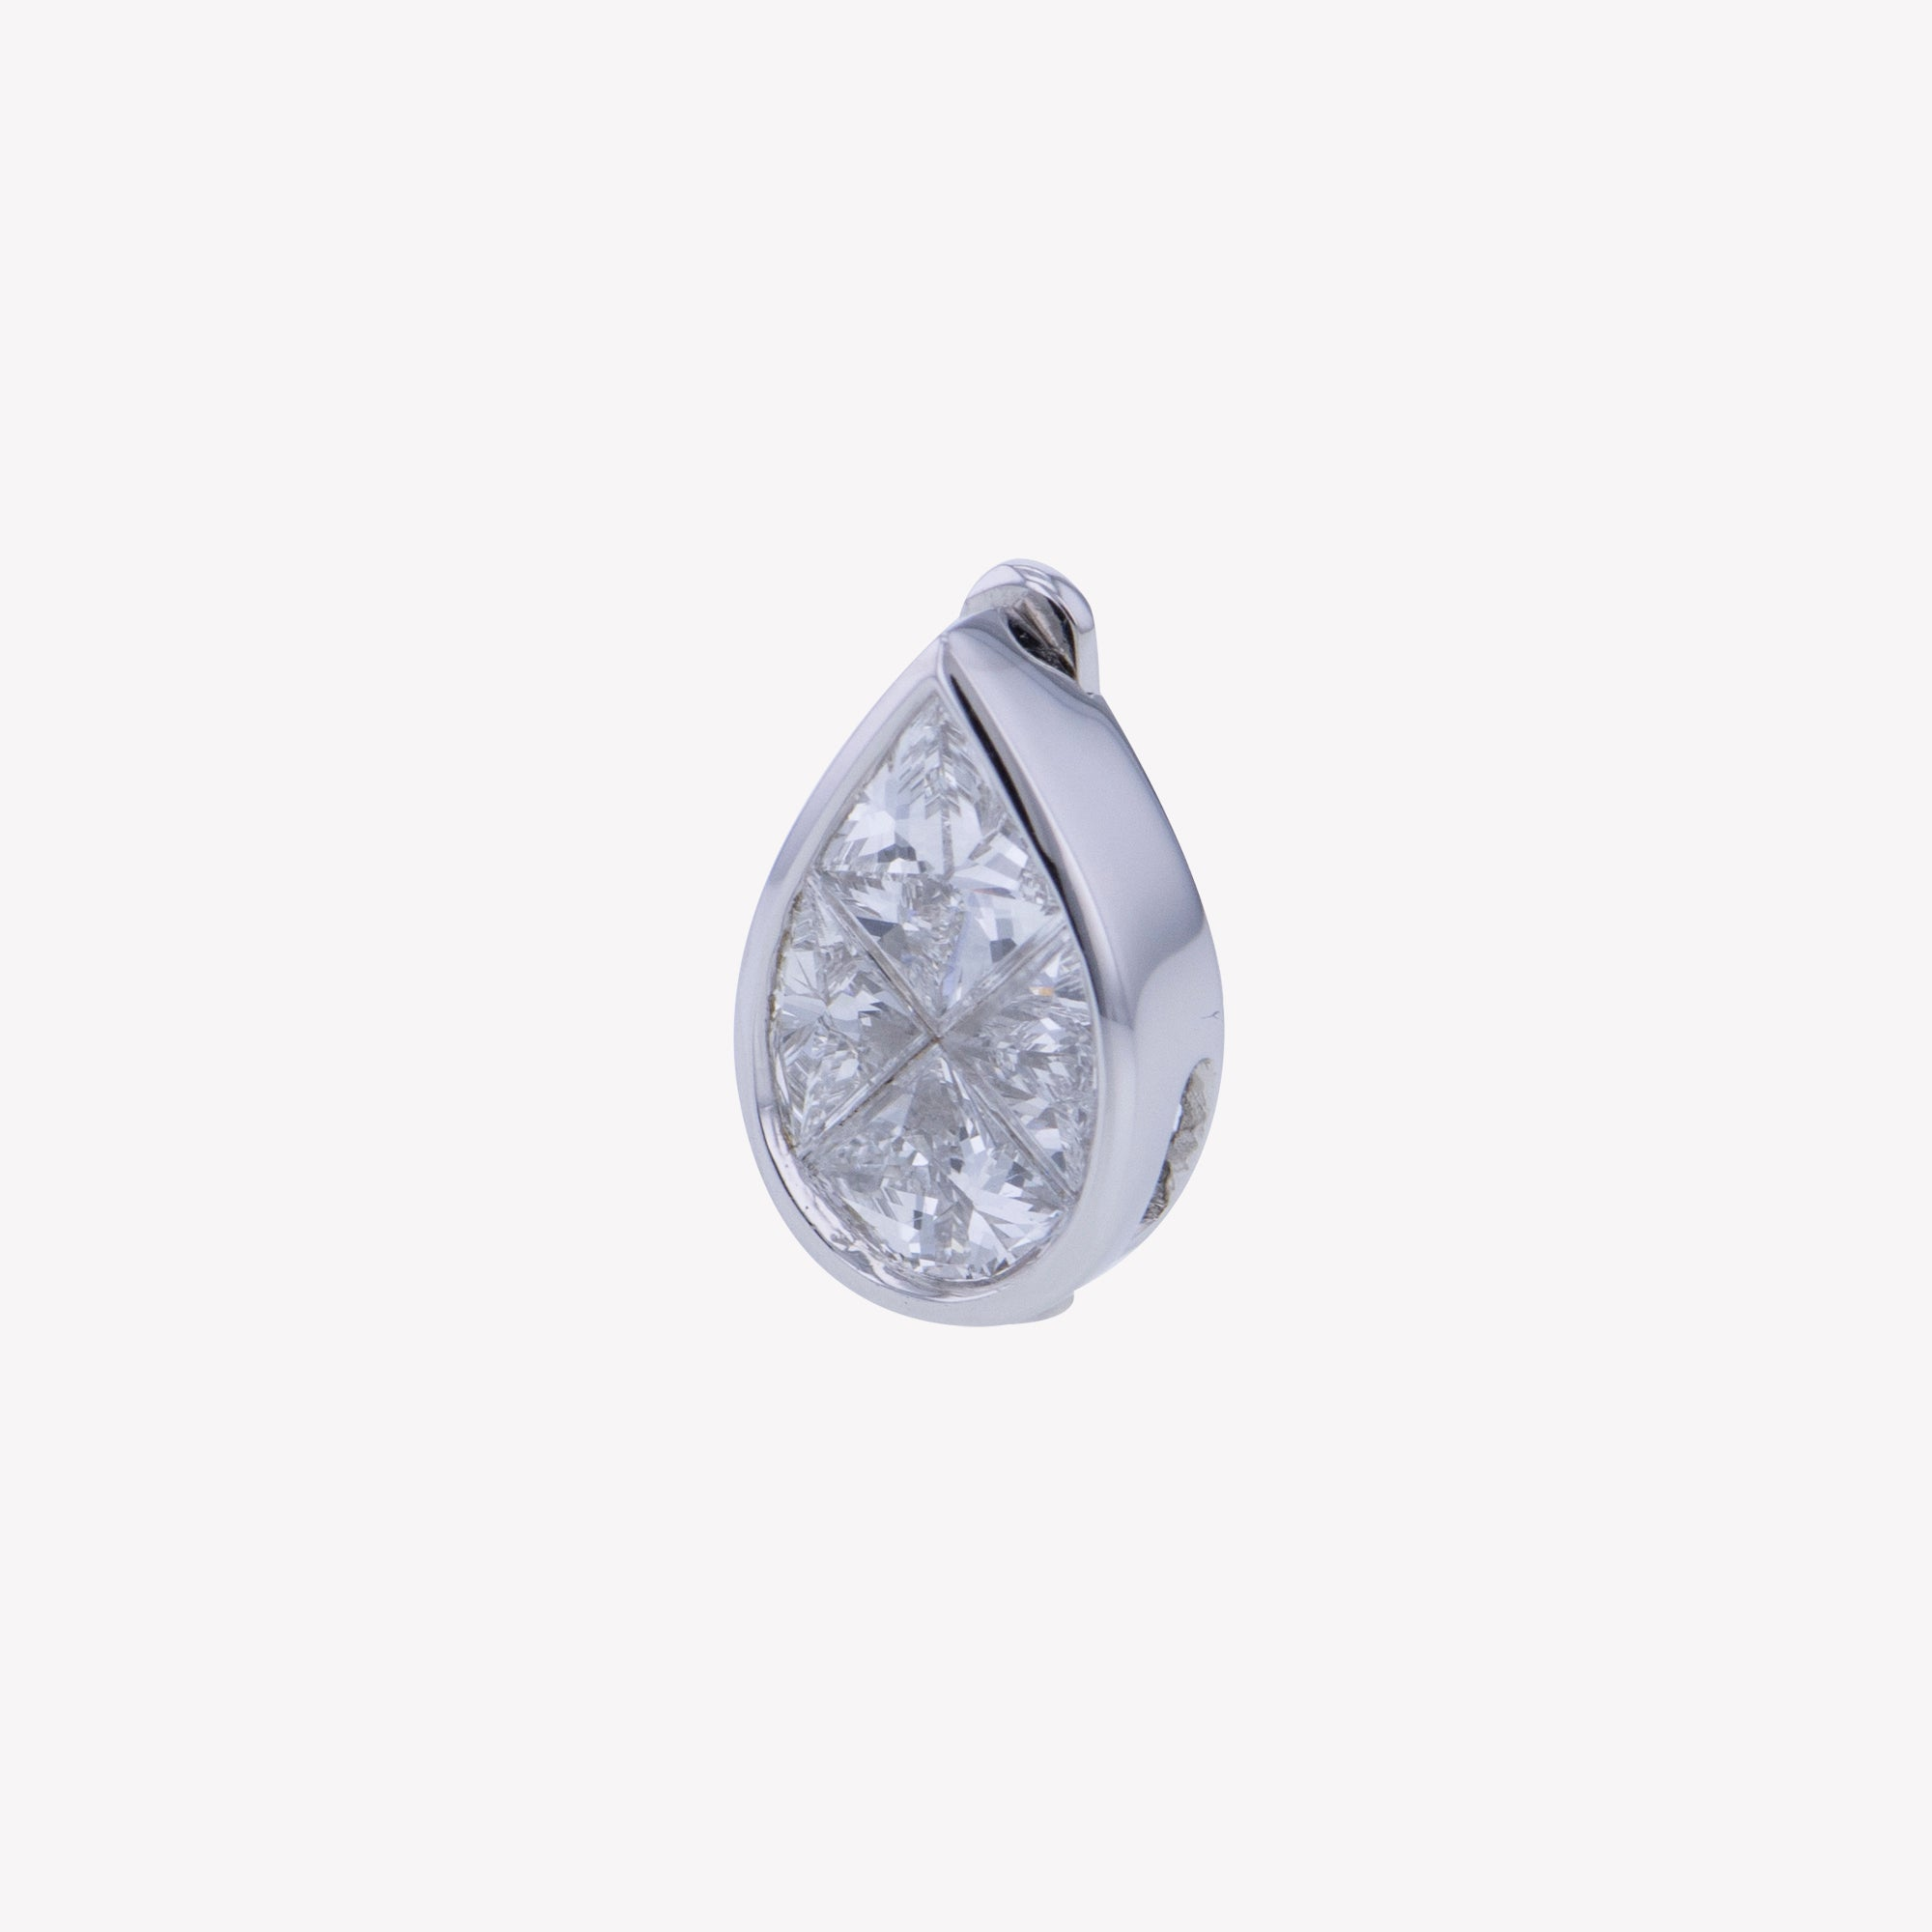 Detachable White Gold Pear Head with Octa Diamond Band